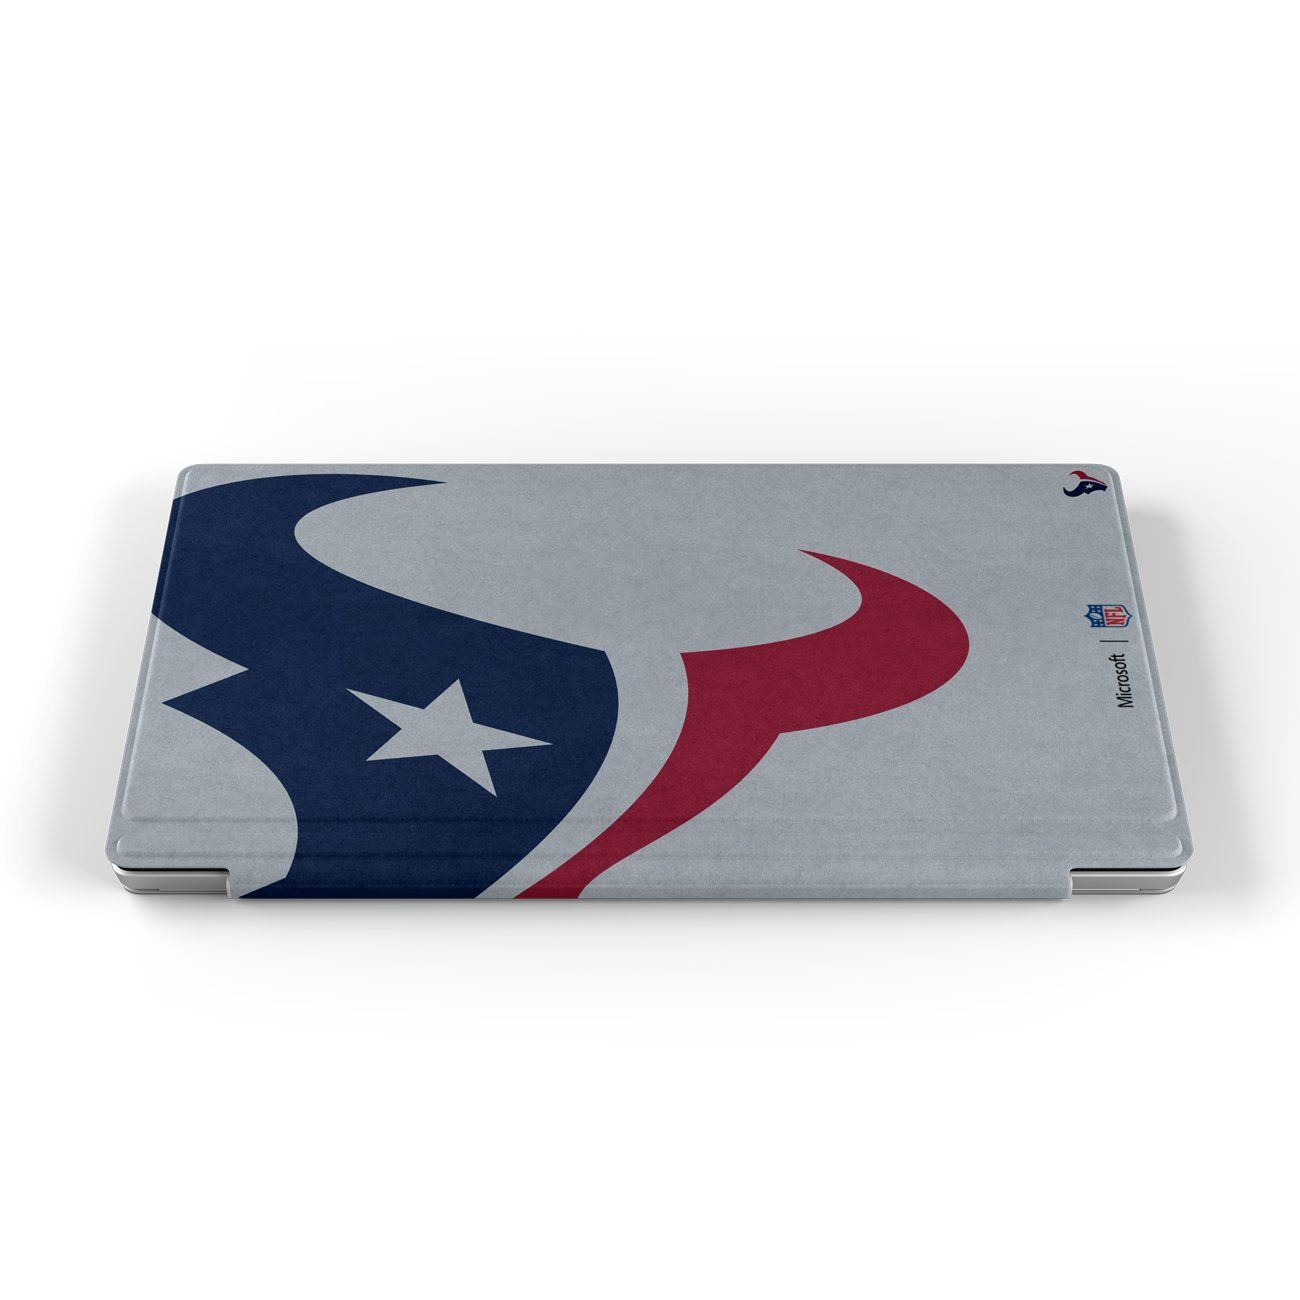 Microsoft Surface Pro 4 Special Edition NFL Type Cover (Houston Texans)